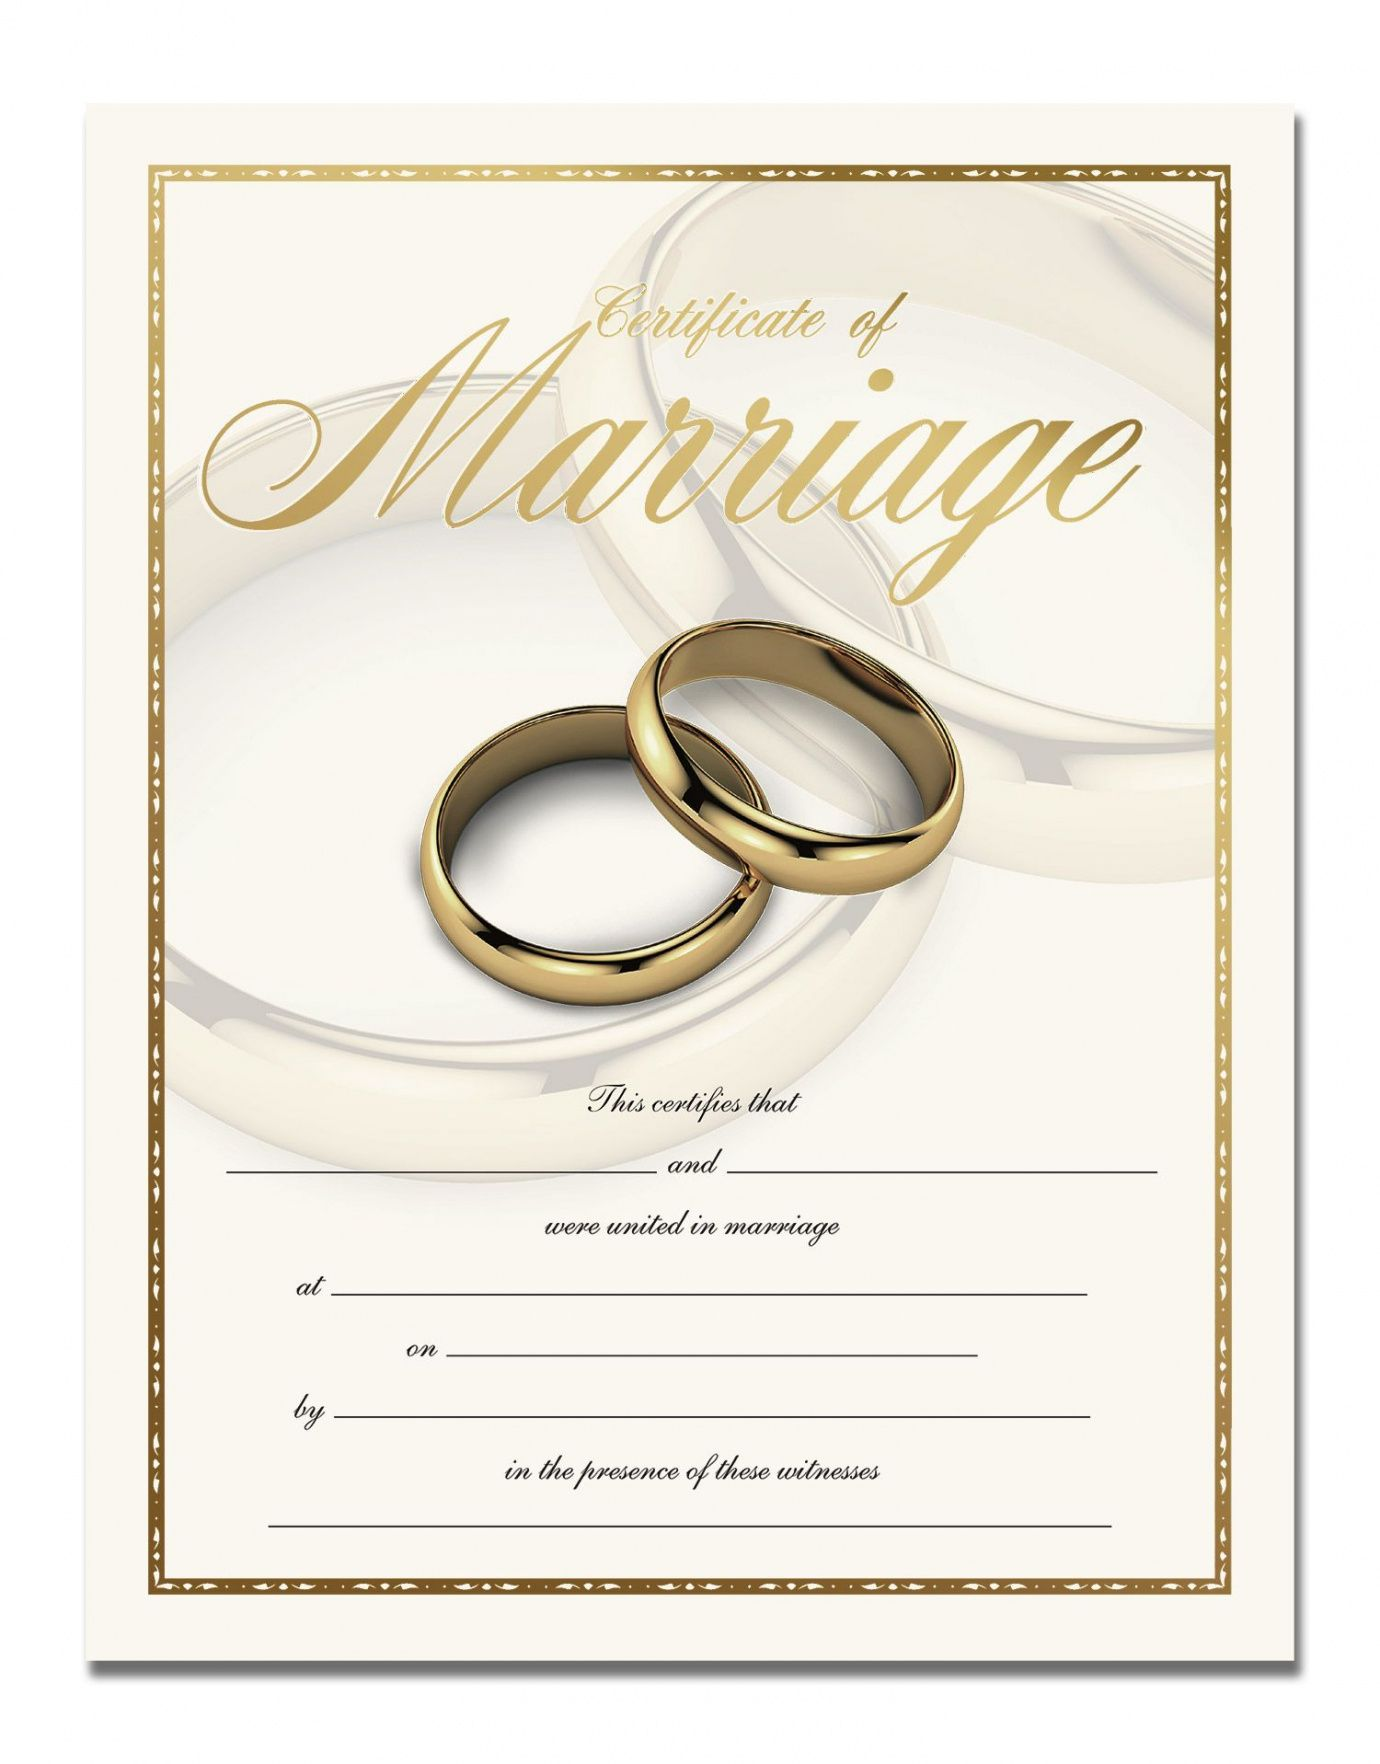 editable premium certificate of marriage in 2019 | the wedding ceremony- for renewal of marriage vows certificate template  blank